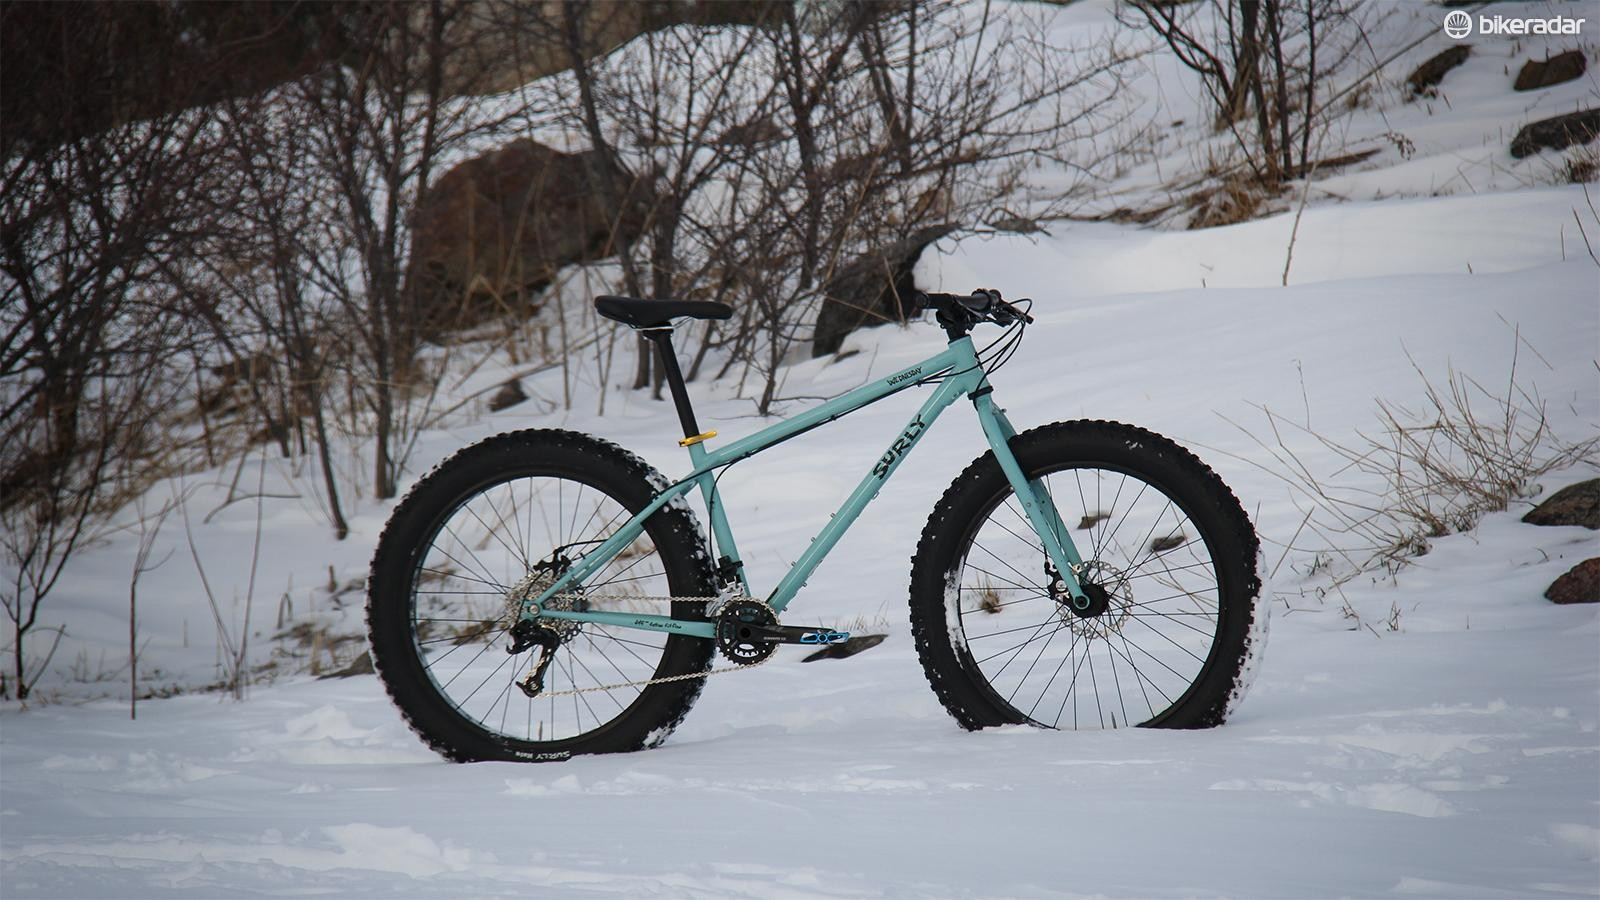 The Surly Wednesday isn't quite as fat at the Ice Cream Truck, but it's more fun on singletrack